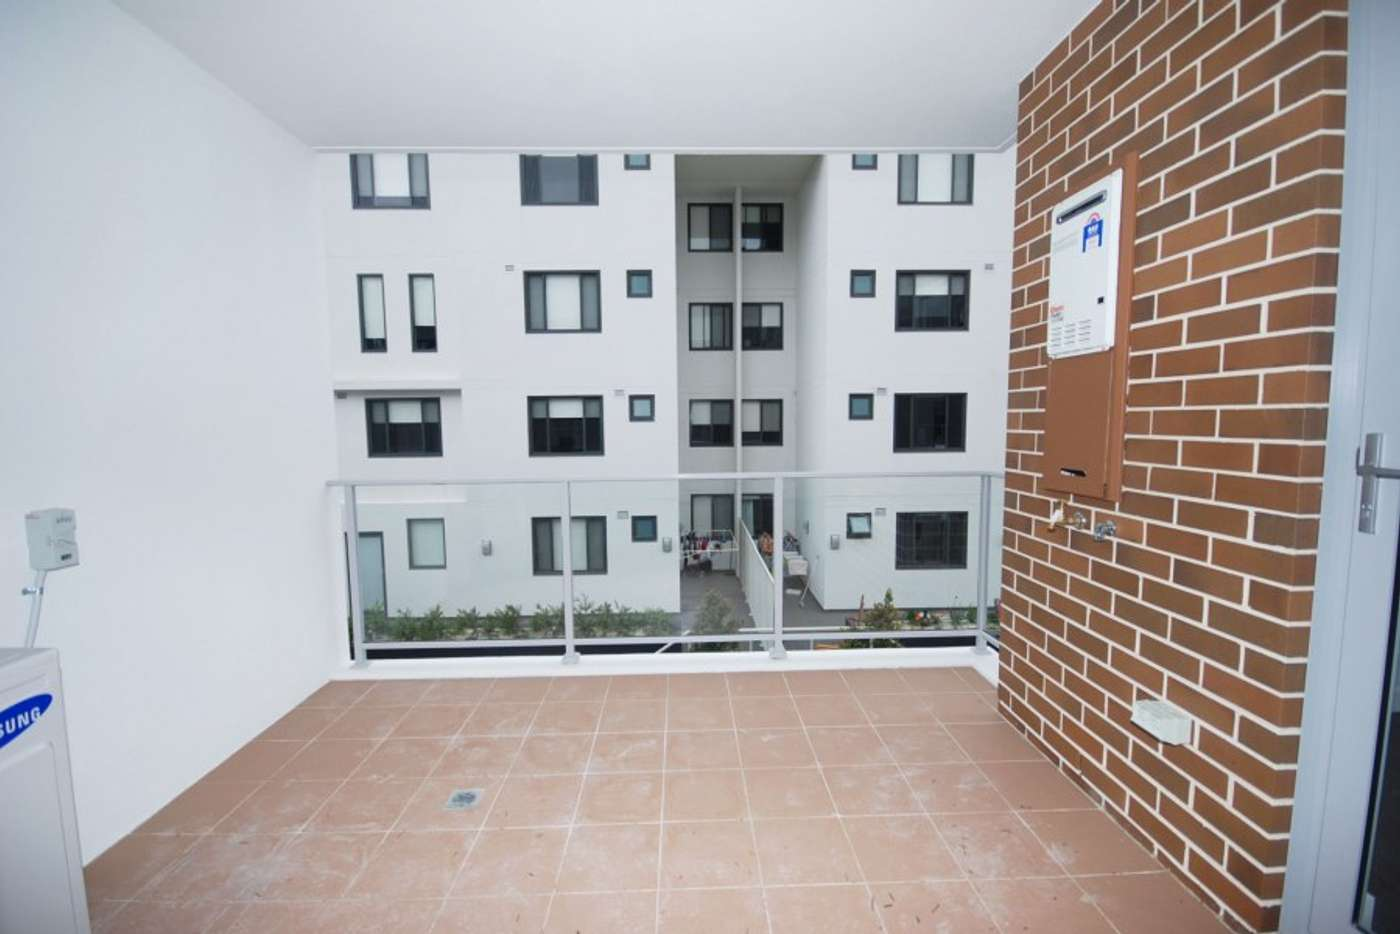 Seventh view of Homely apartment listing, 19/41-45 Mindarie Street, Lane Cove North NSW 2066